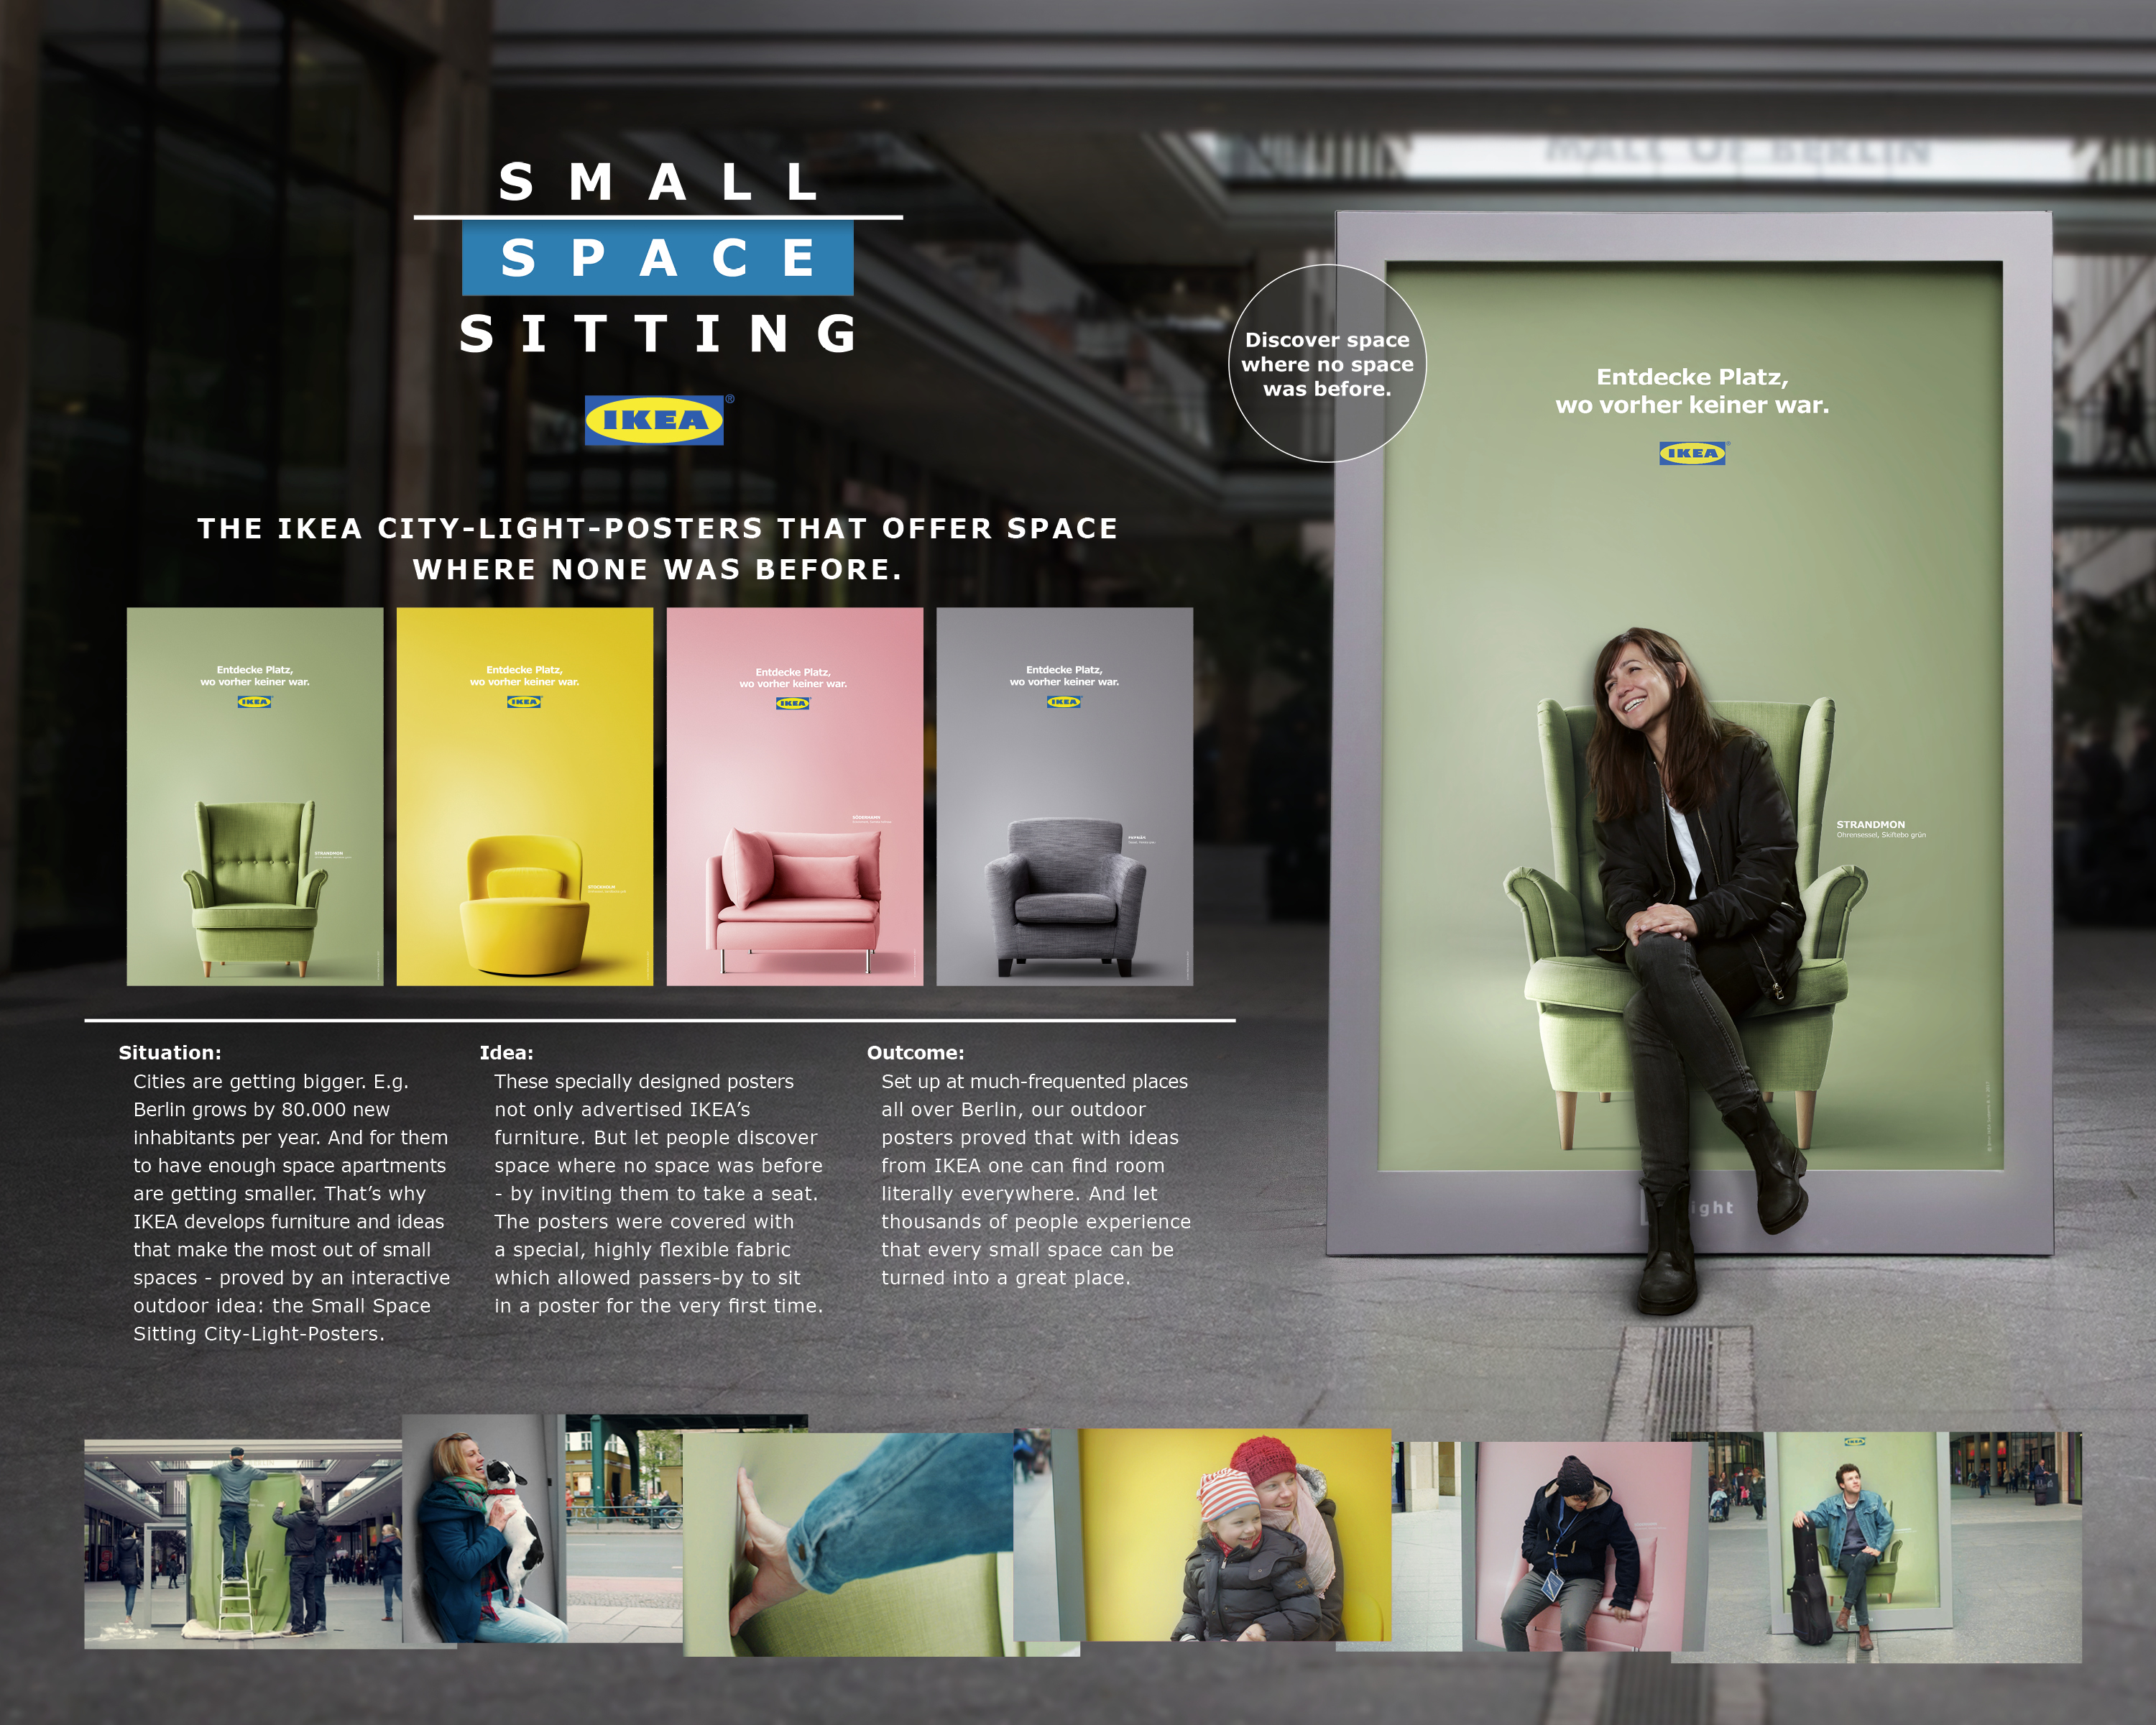 Thumbnail for Small Space Sitting